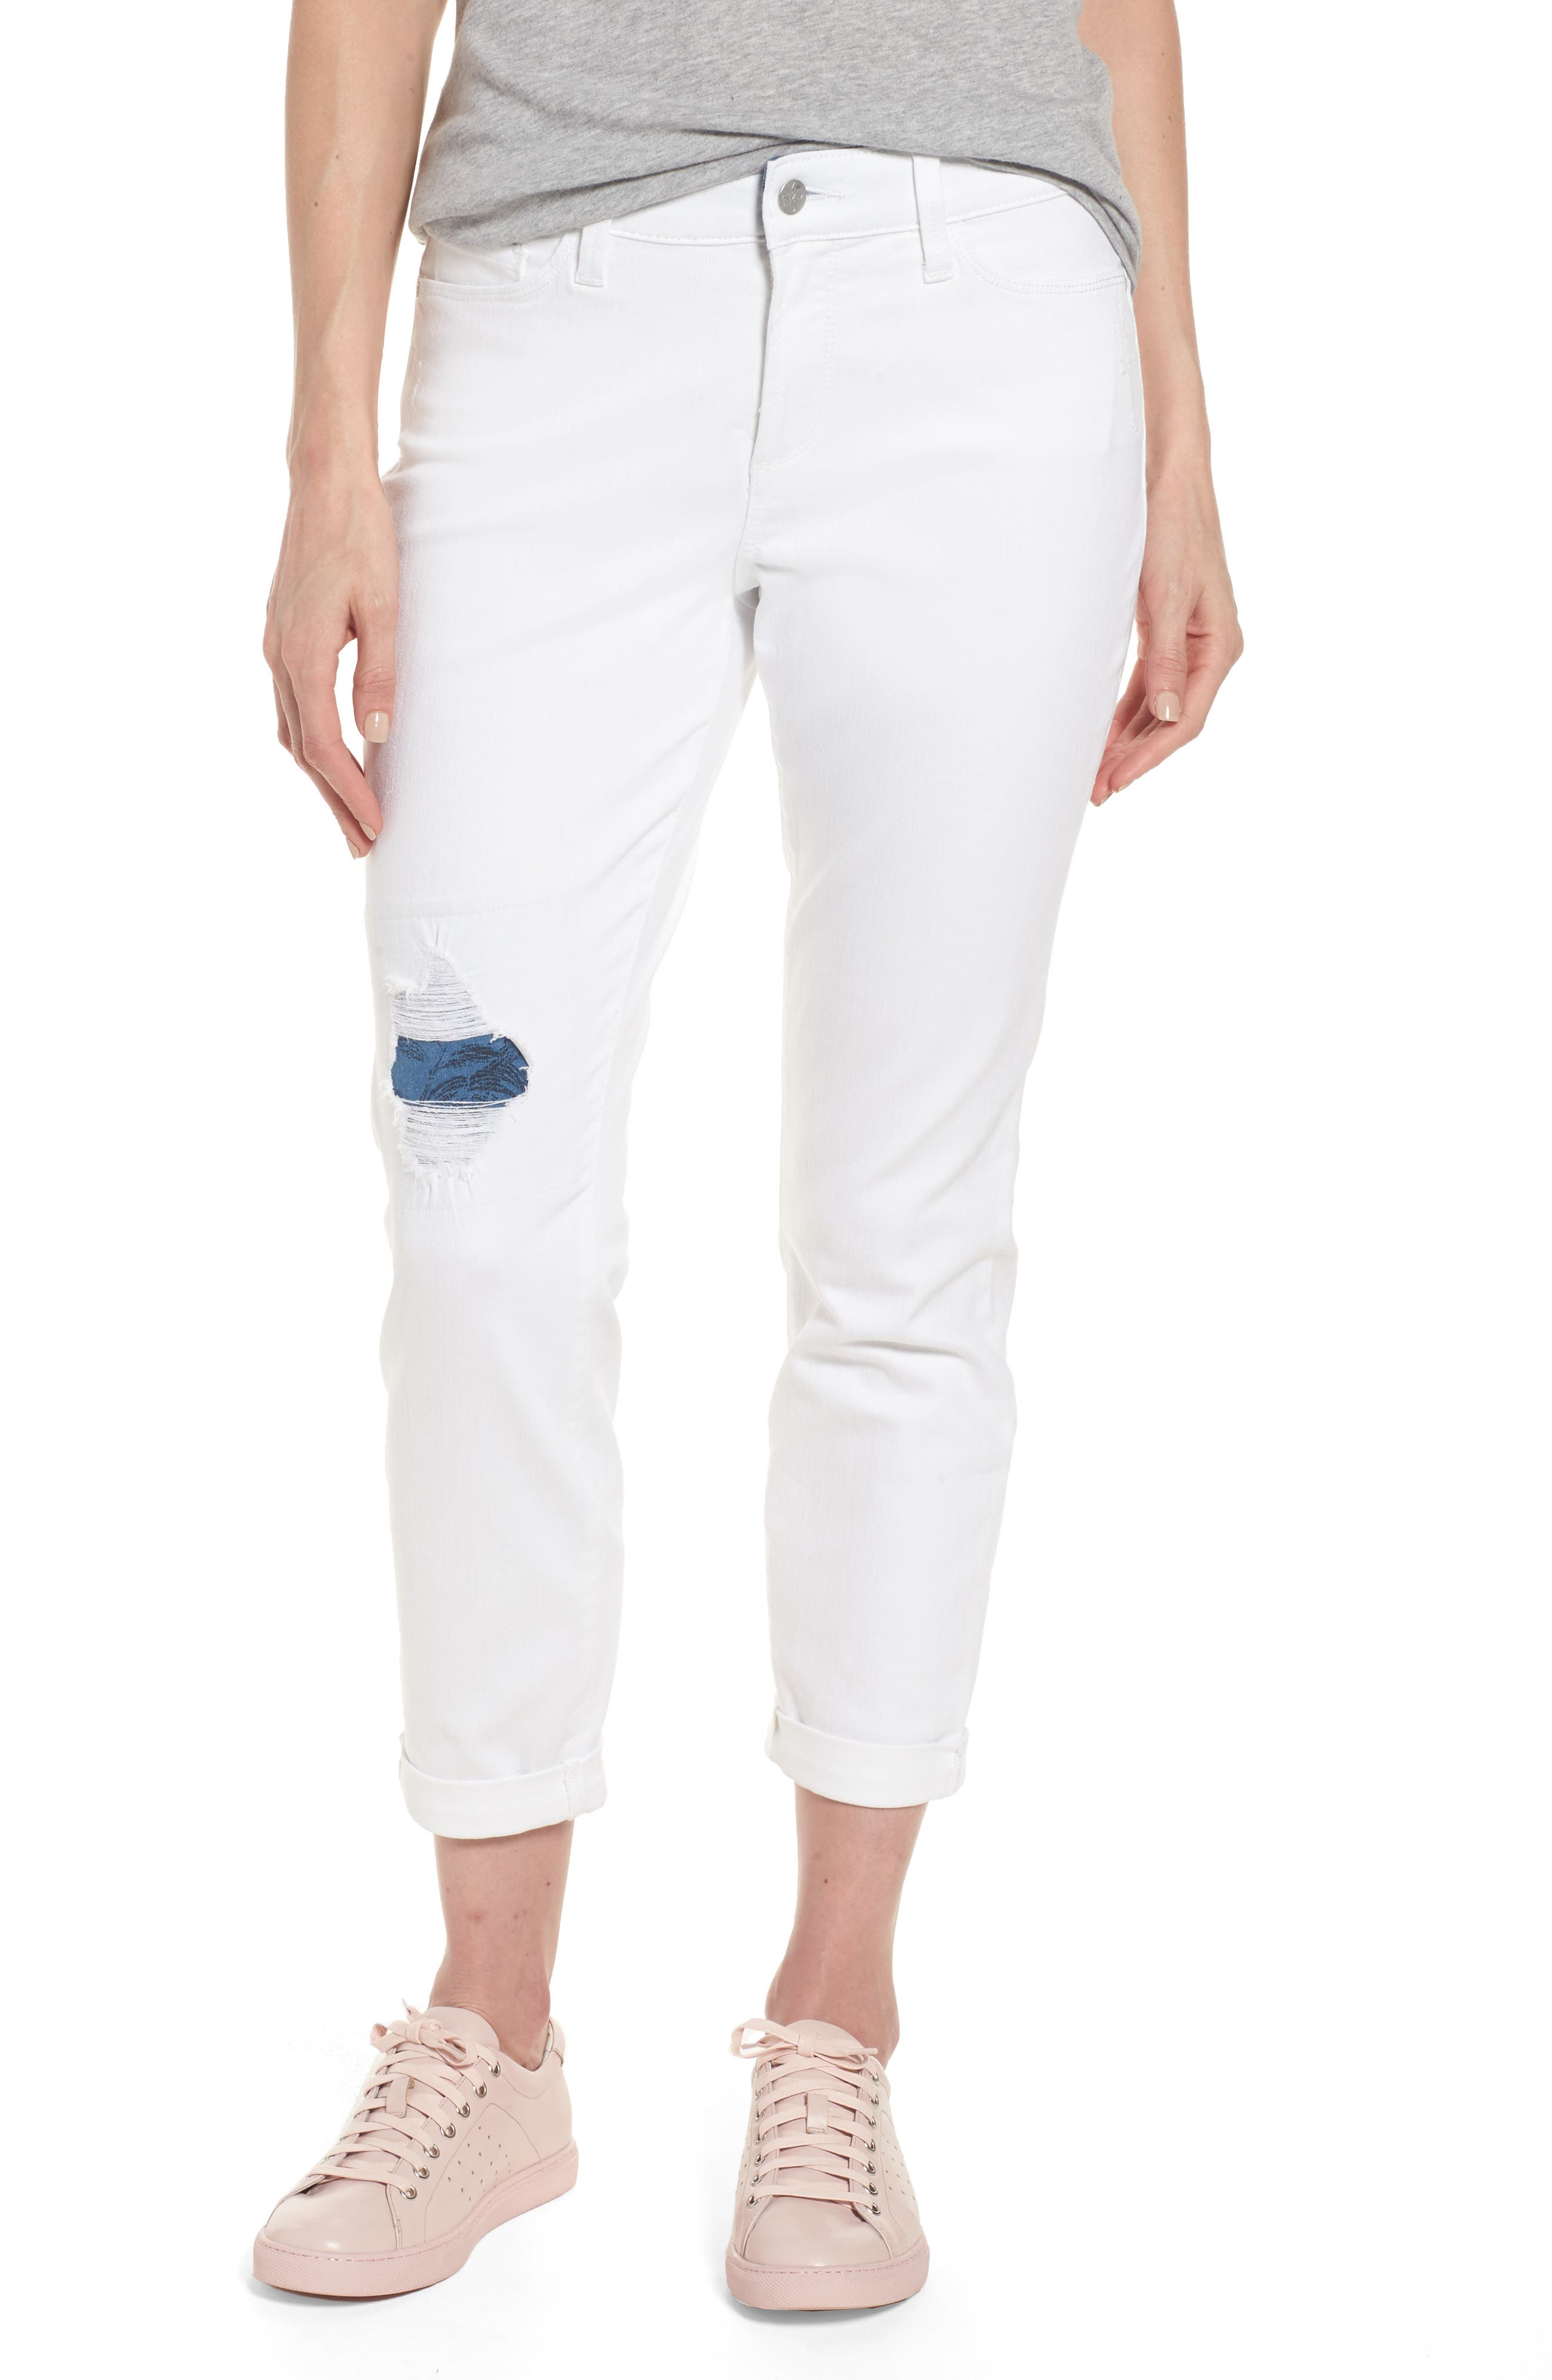 NYDJ Ripped Stretch Ankle Jeans